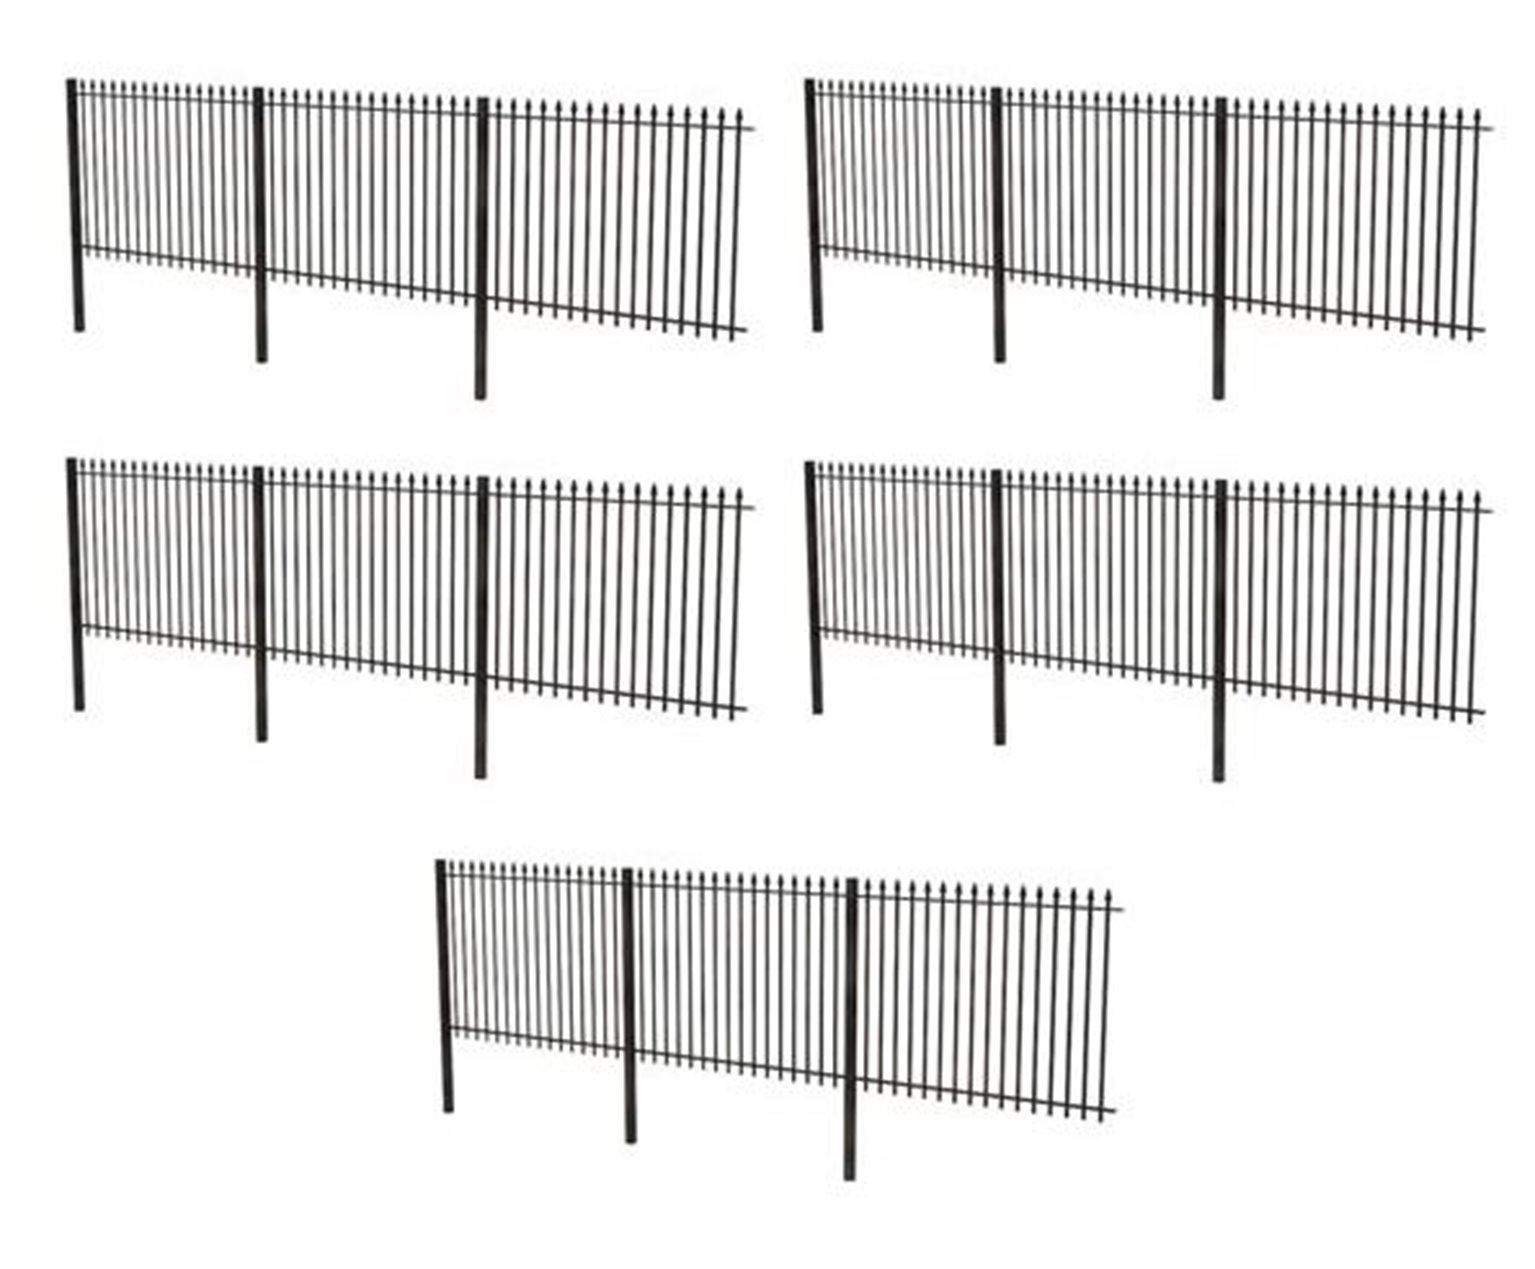 44-562 Metal Fencing (OO Gauge) by Scenecraft - Rails of